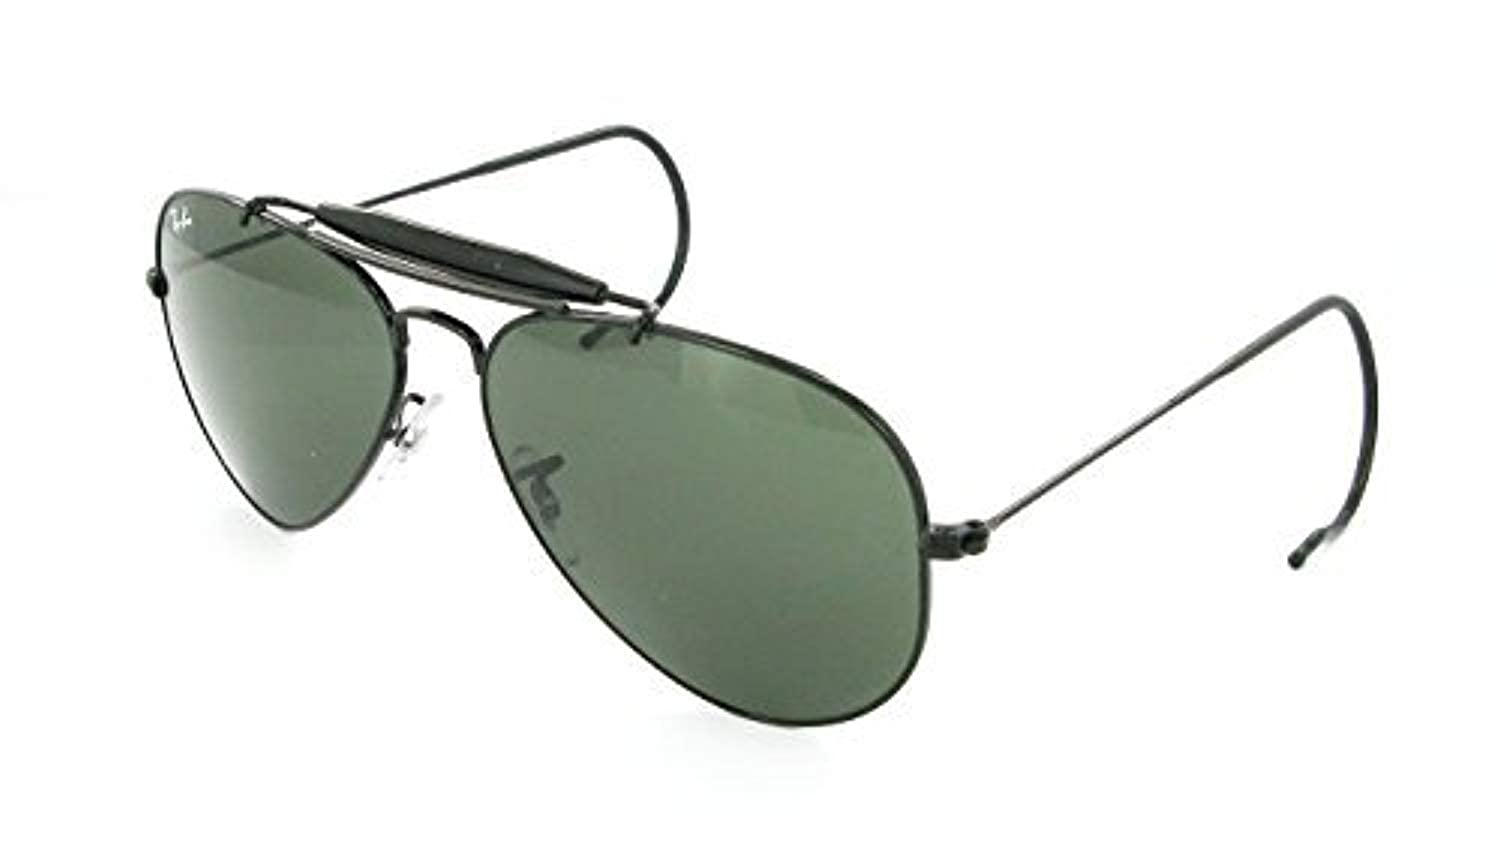 Ray Ban Outdoorsman RB3030 L9500 58mm Black Frame, Green Lens